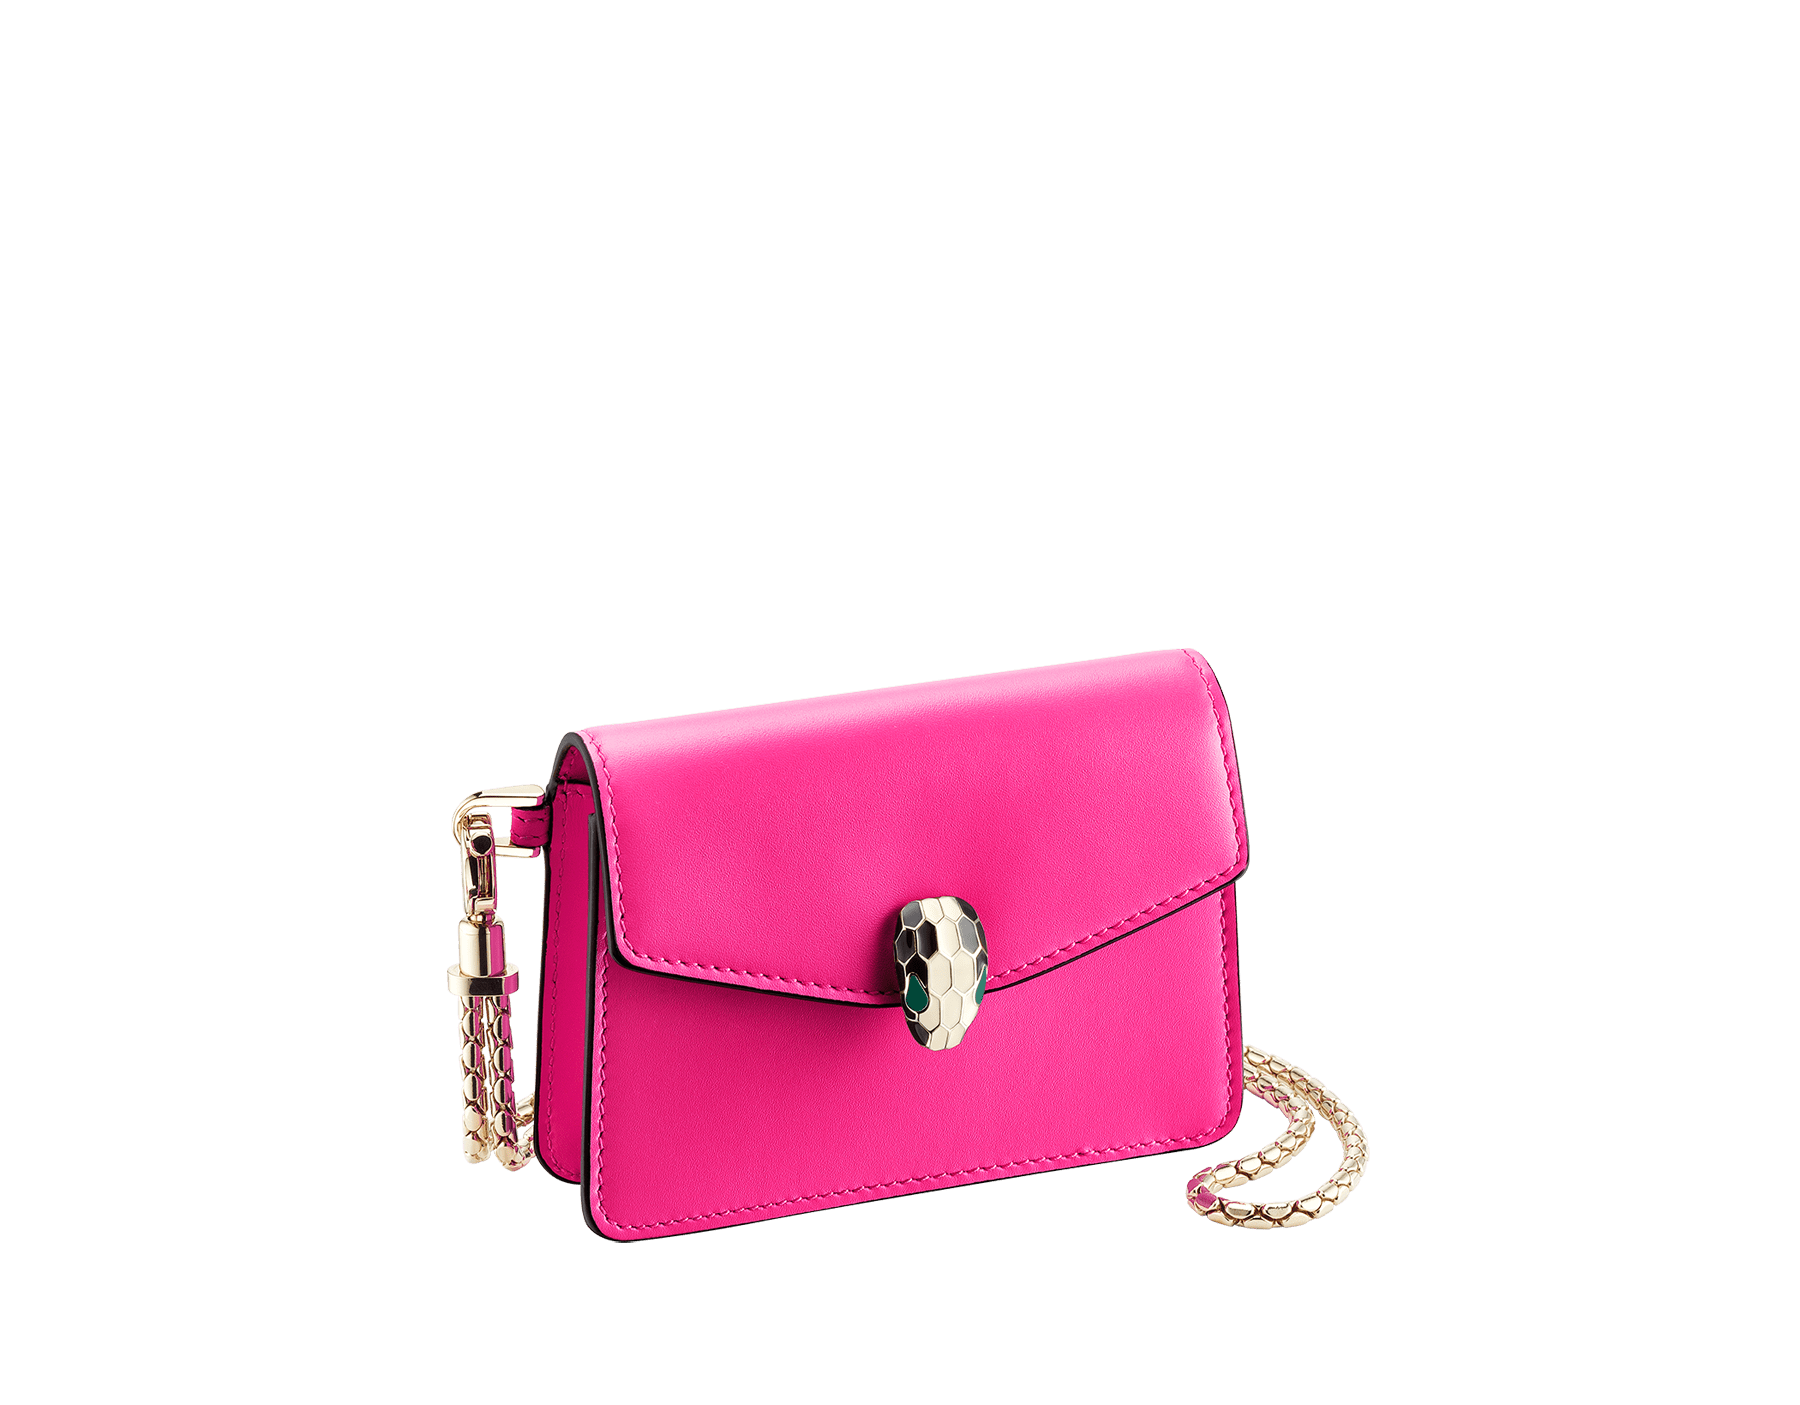 Serpenti Forever neck credit card holder in flash amethyst calf leather. Iconic snake head closure in black and white enamel, with green enamel eyes. 289396 image 1